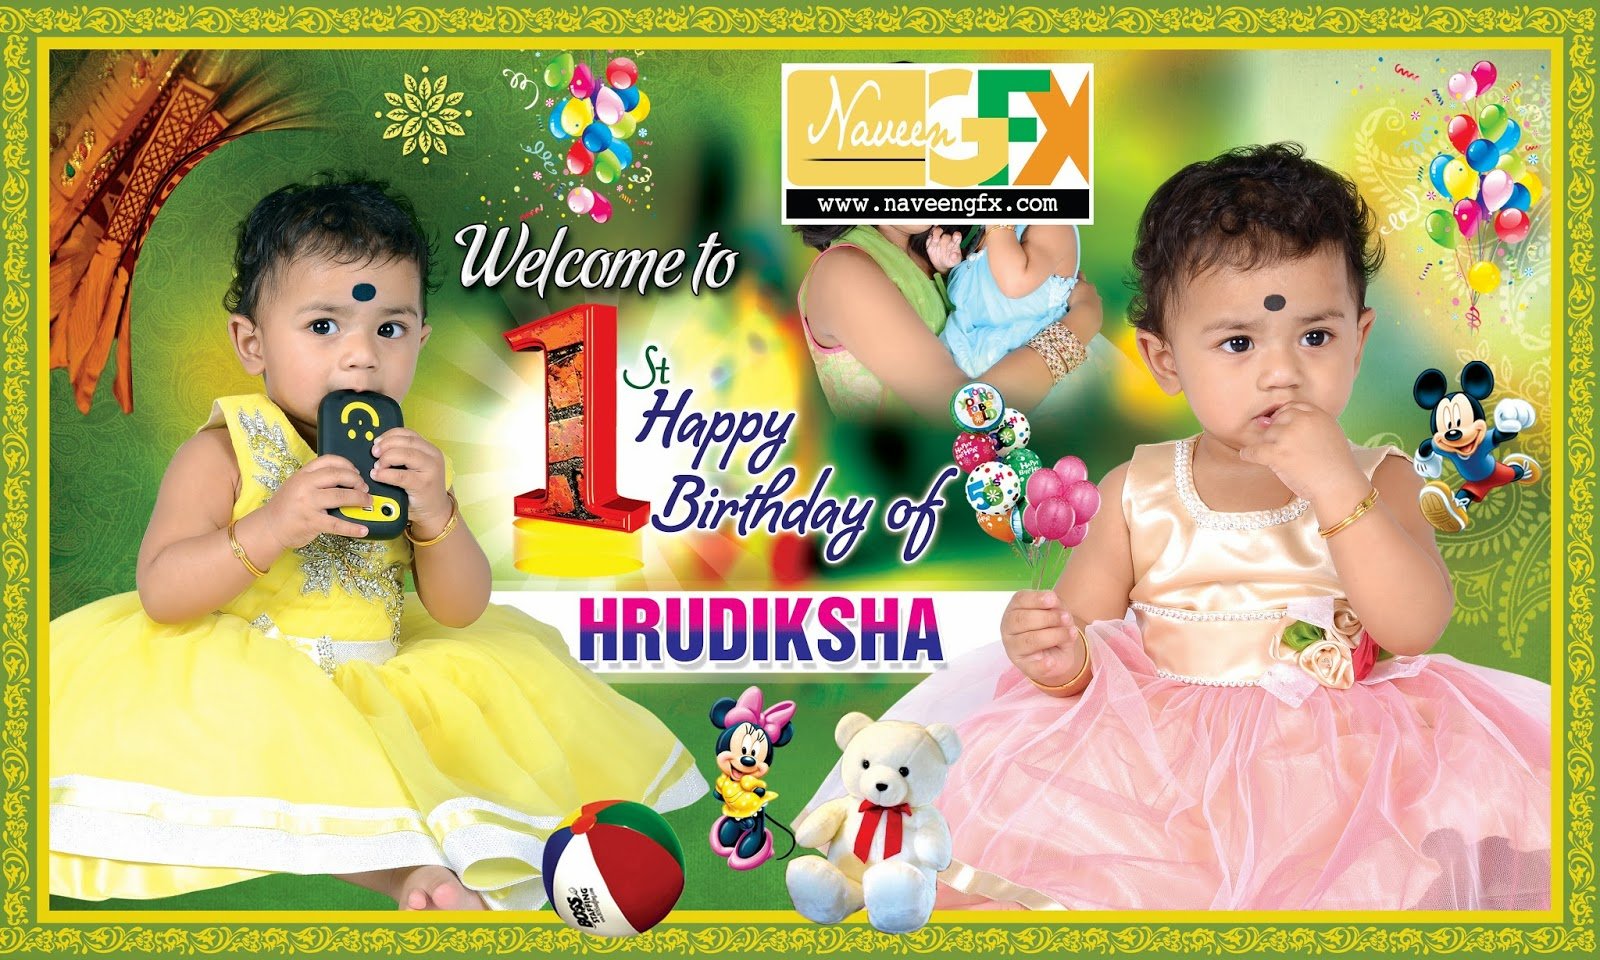 birthday flex design templates ; 070ffb8be0a0aa8d29908dd66c3ffb10